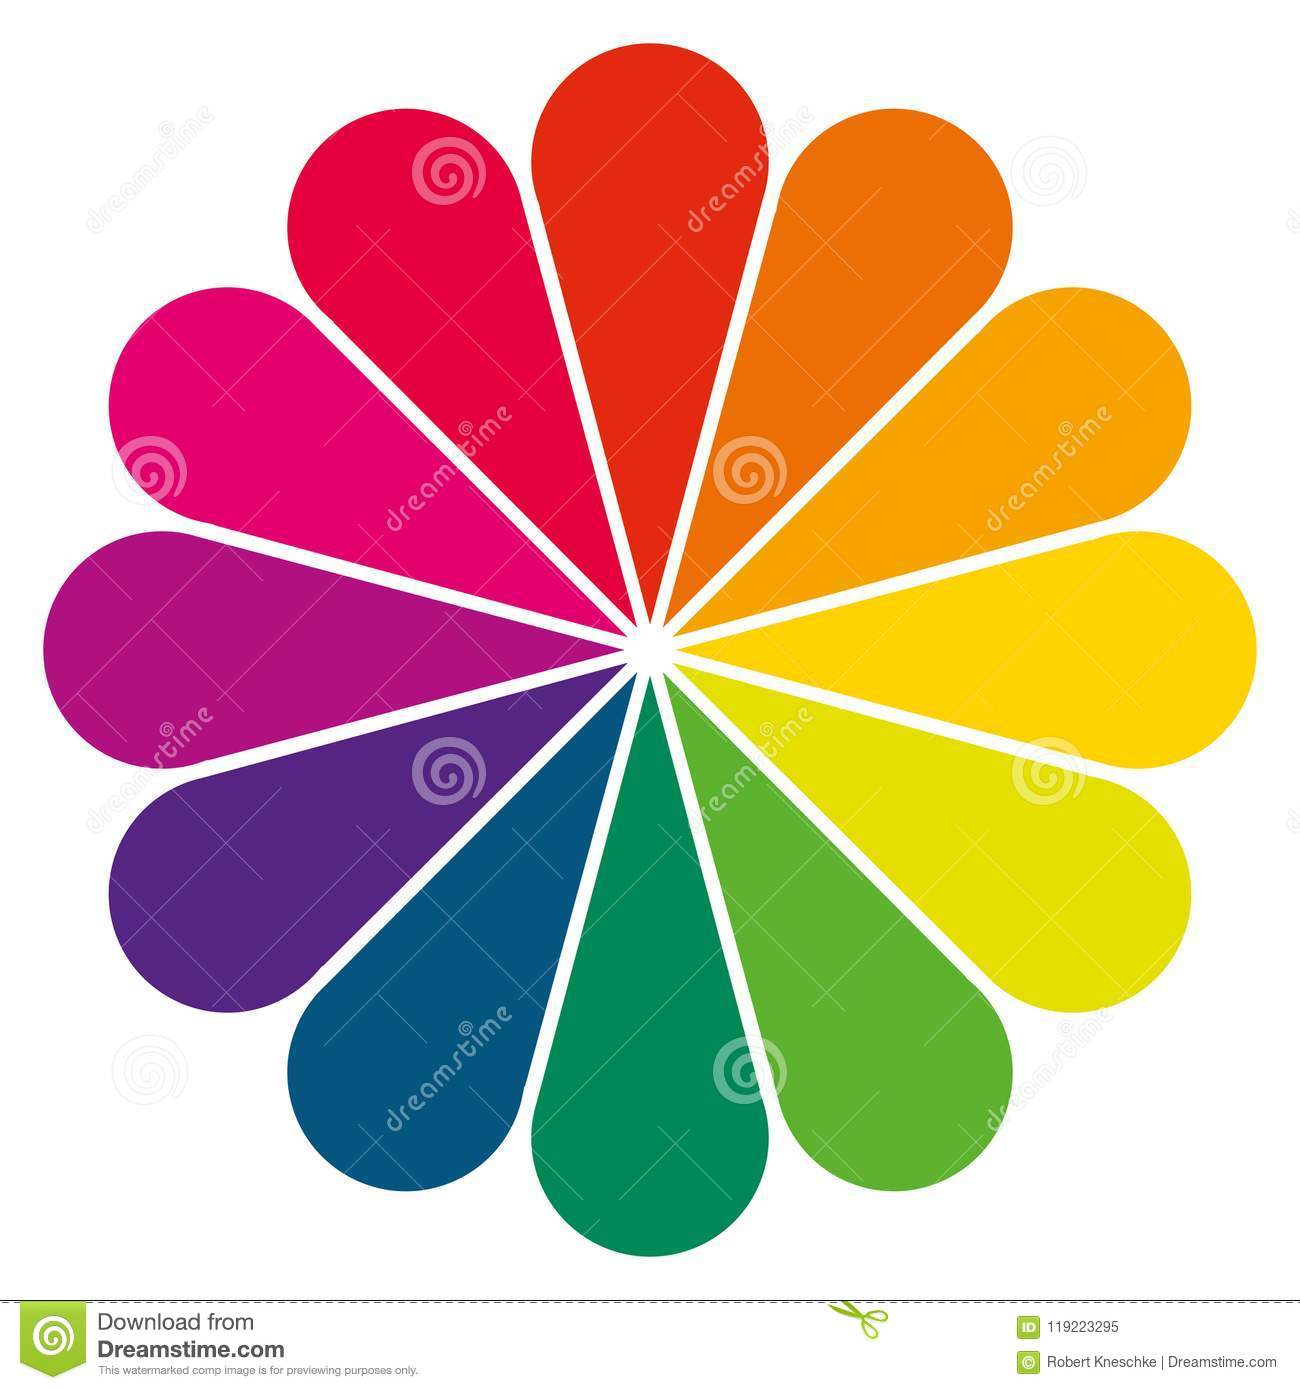 Simple Color Wheel As A Flower Stock Illustration